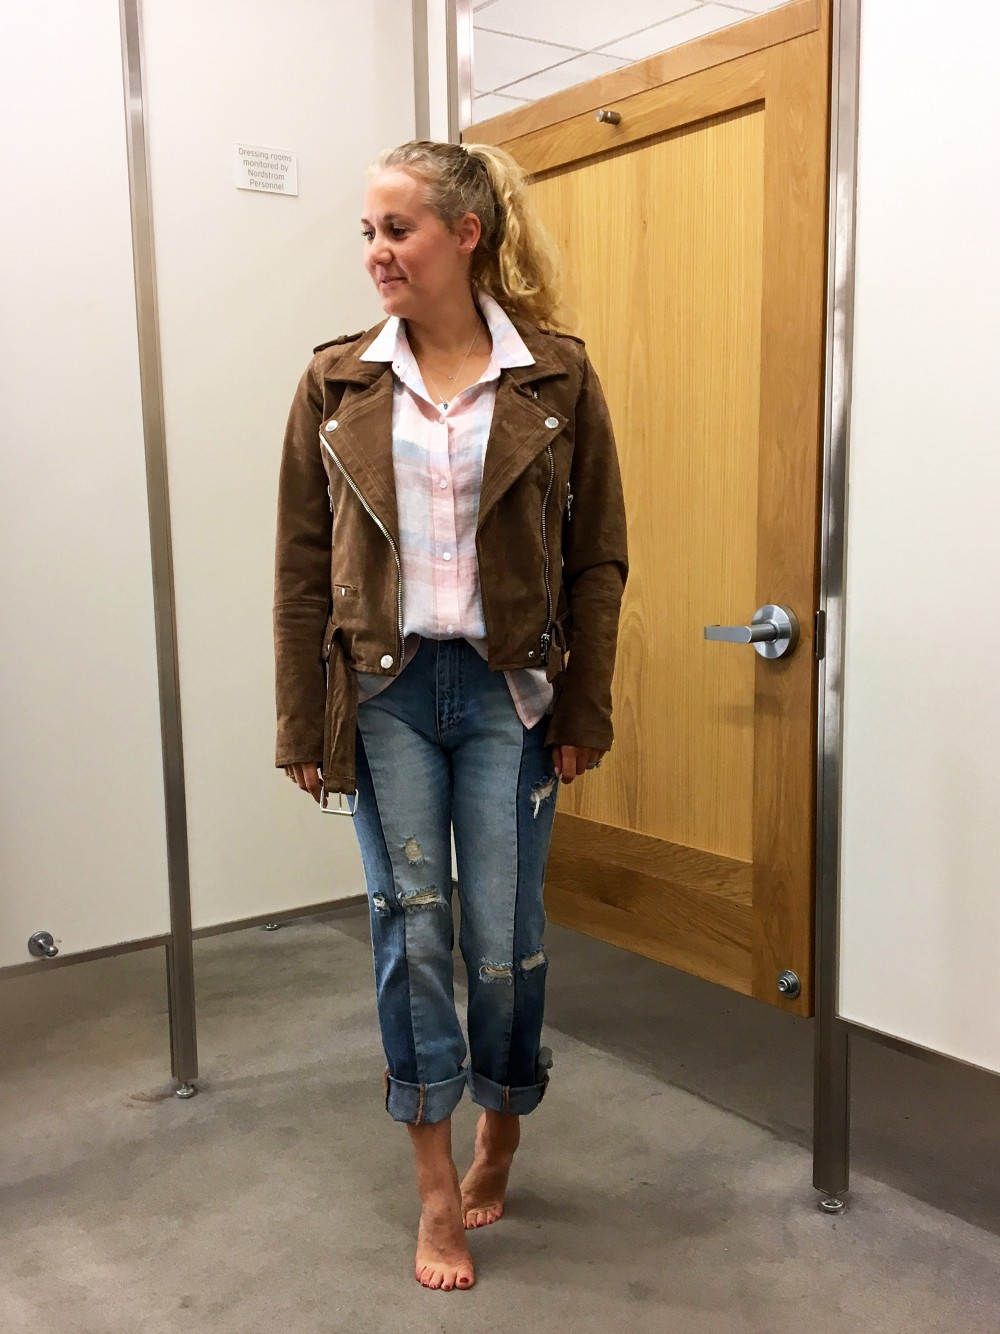 Nordstrom Half Yearly Sale-Dressing Room Diaries-Have Need Want 2